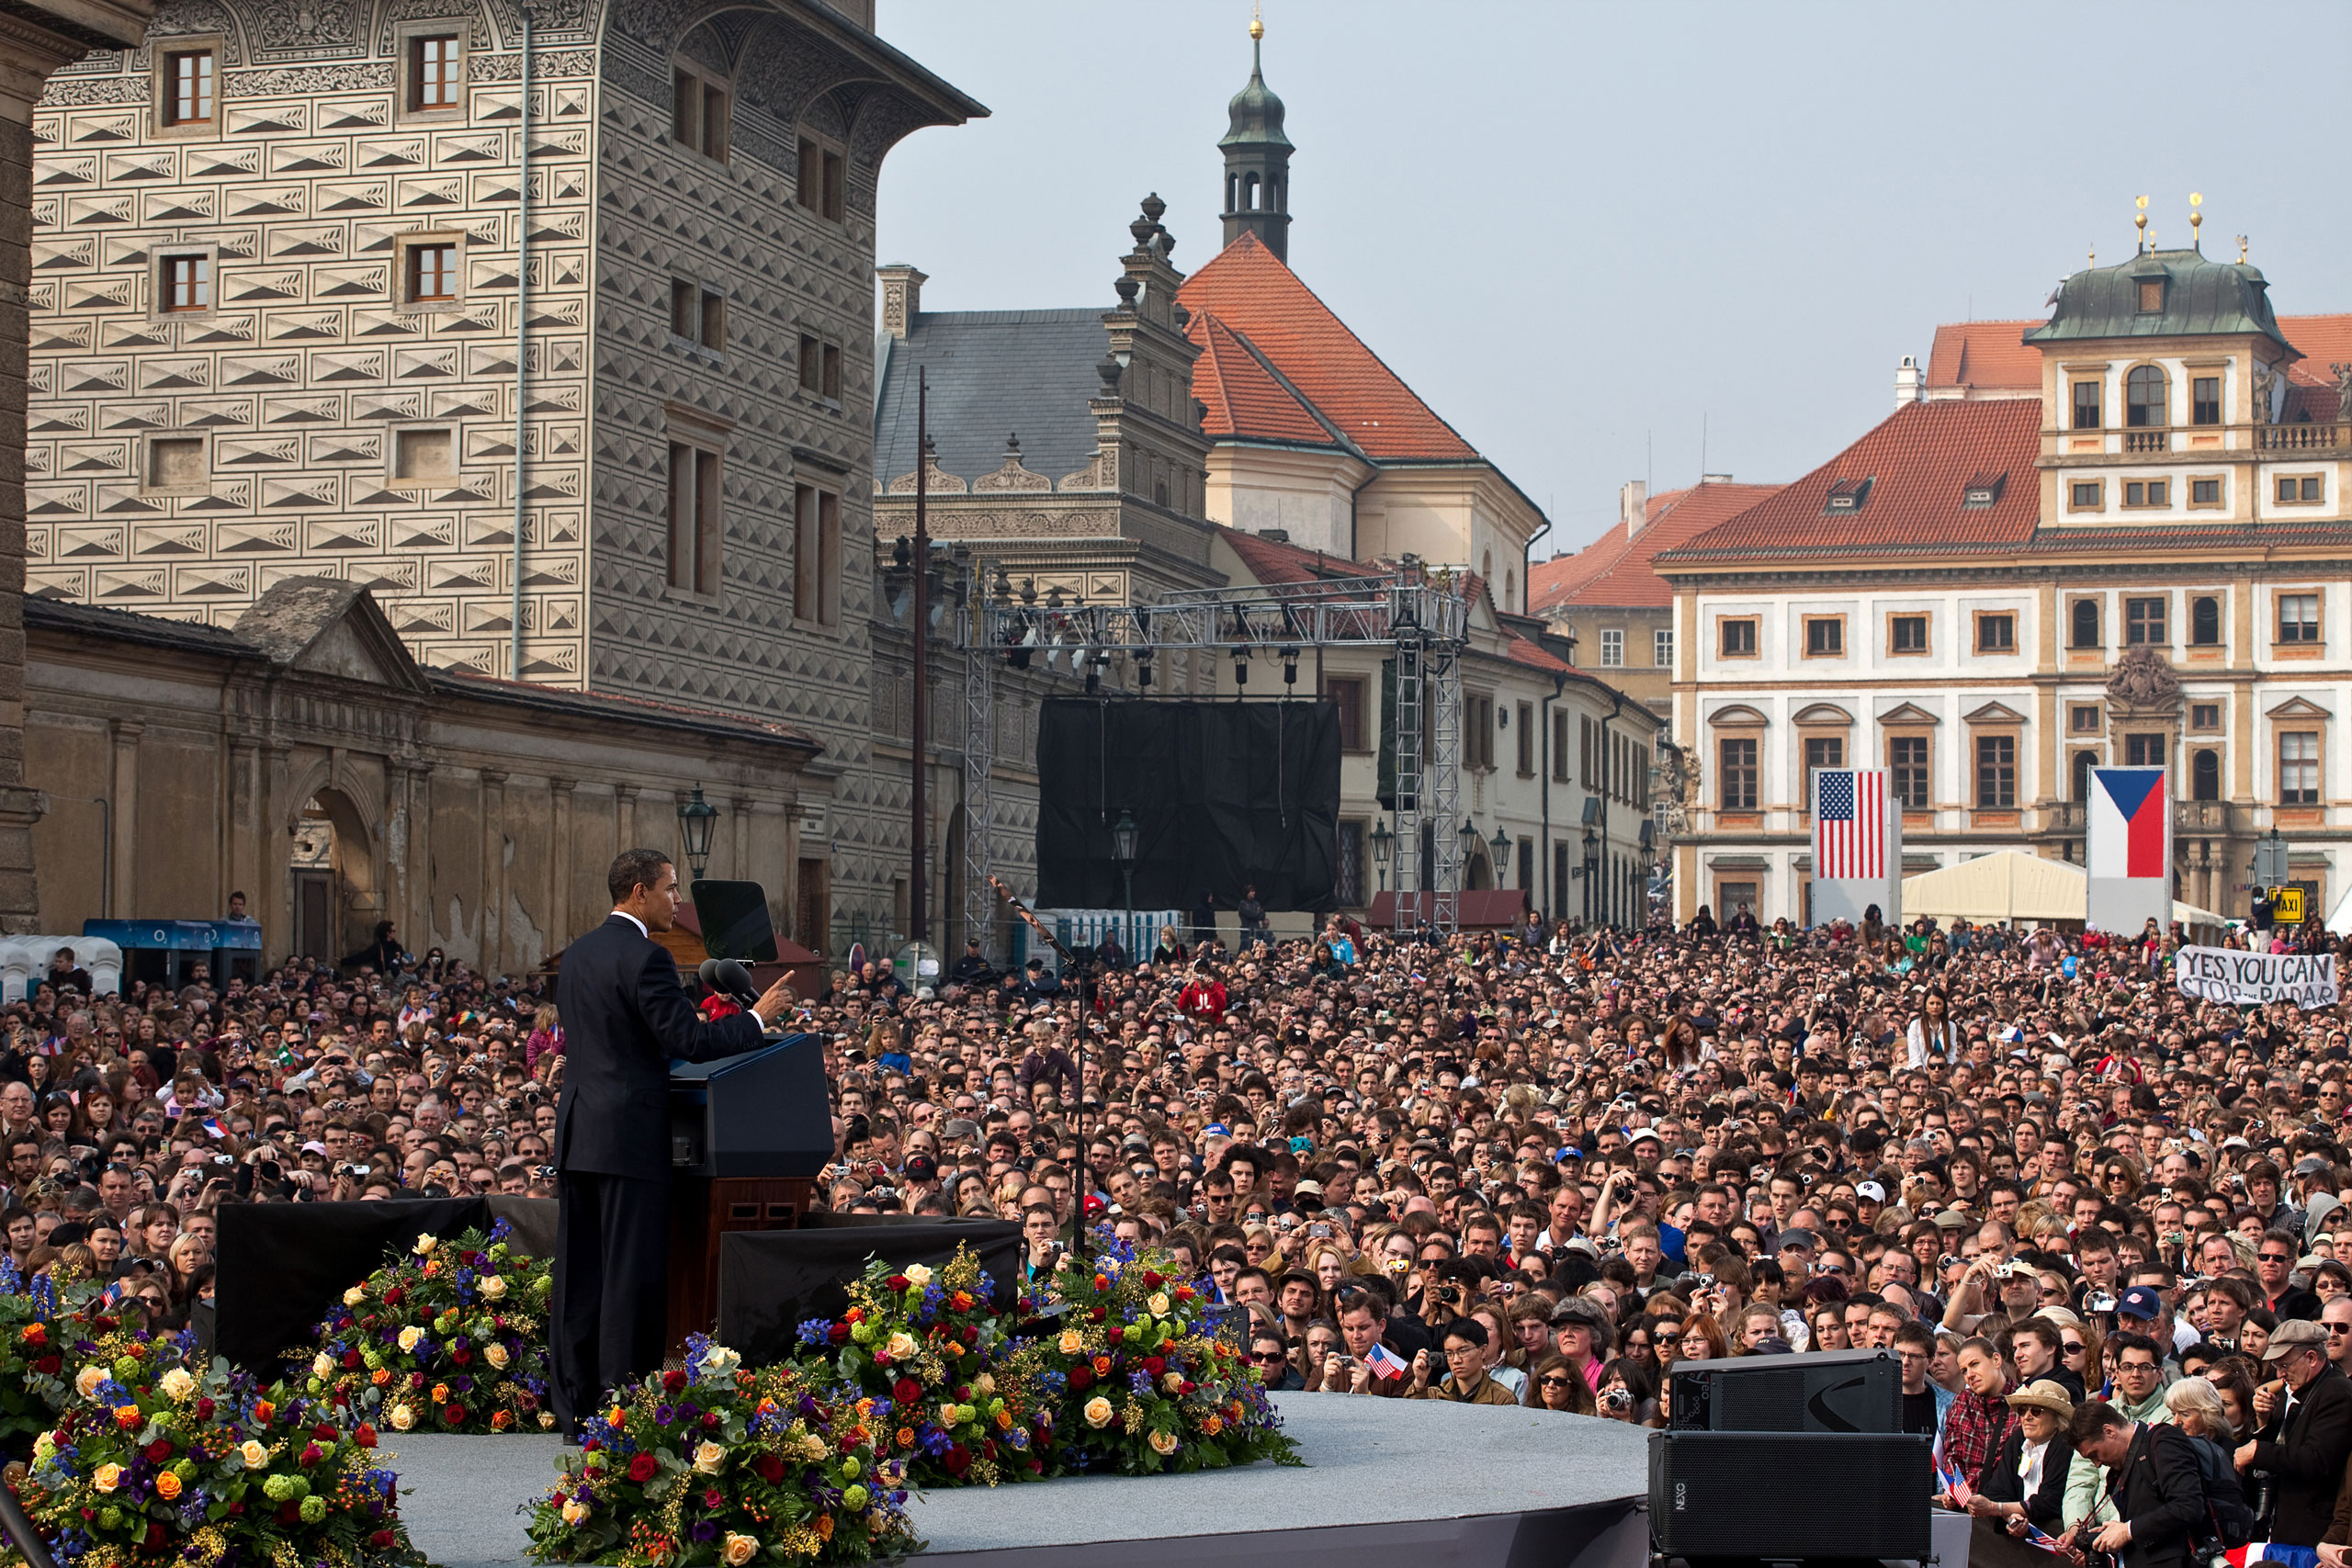 President Barack Obama delivers his first major speech stating a commitment to seek the peace and security of a world without nuclear weapons in front of thousands in Prague, Czech Republic, April 5, 2009.